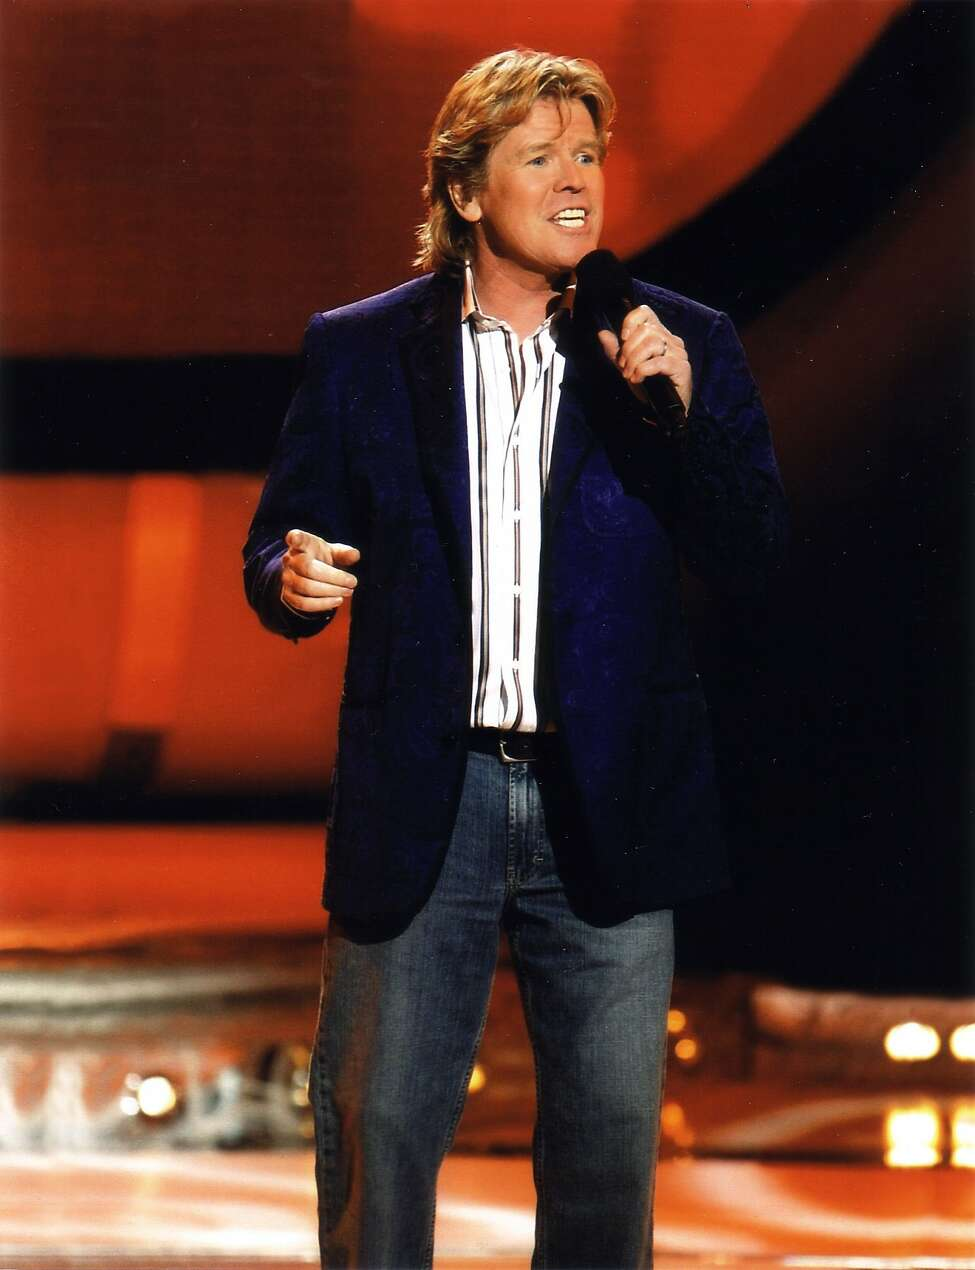 Friday: Classic 1960s British pop group Herman's Hermits, featuring Peter Noone, will perform at Rivers Casino & Resort.